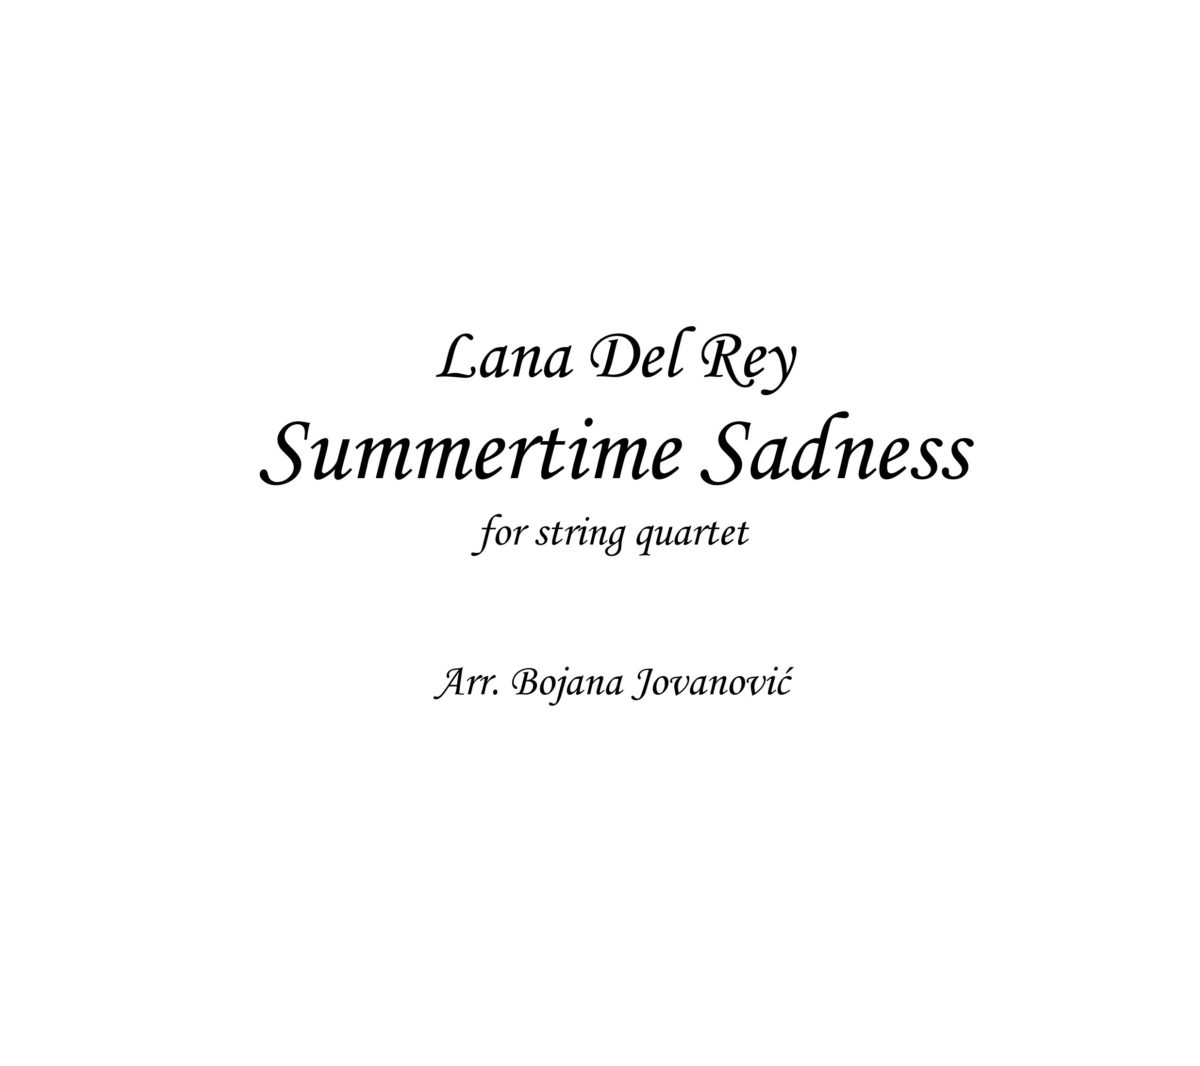 Summertime sadness (Lana Del Rey) - Sheet Music